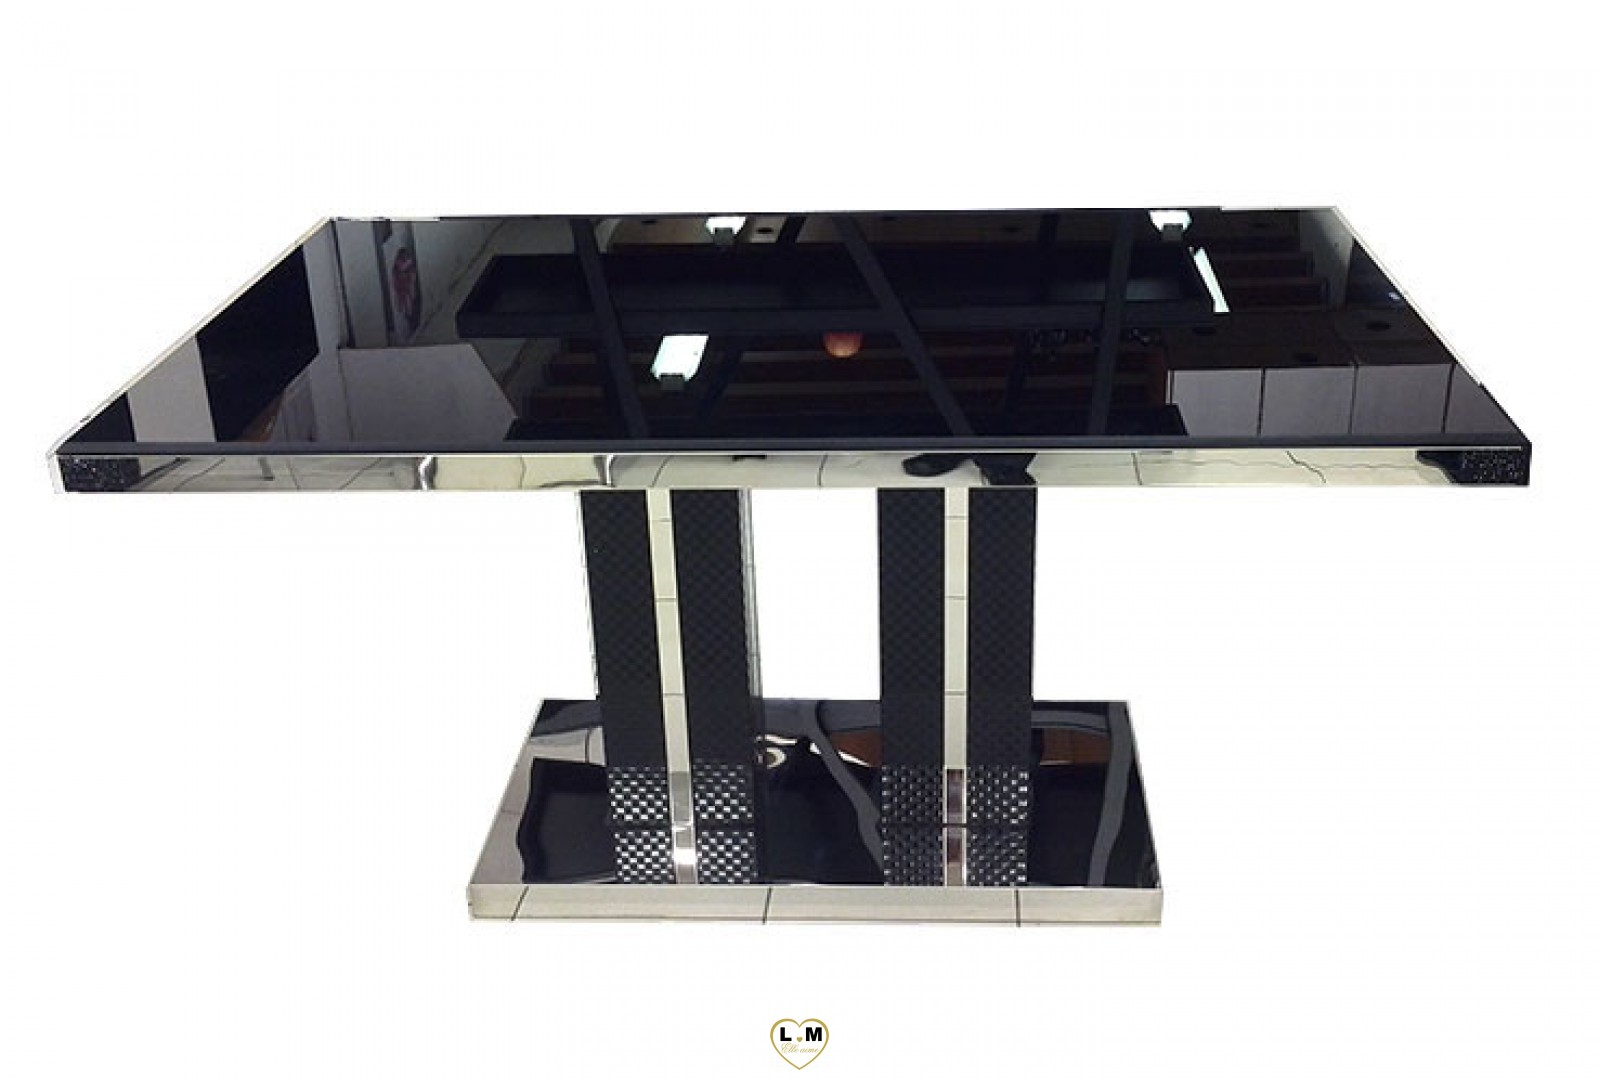 Emejing table a manger verre noire images awesome for Fly table salle manger verre